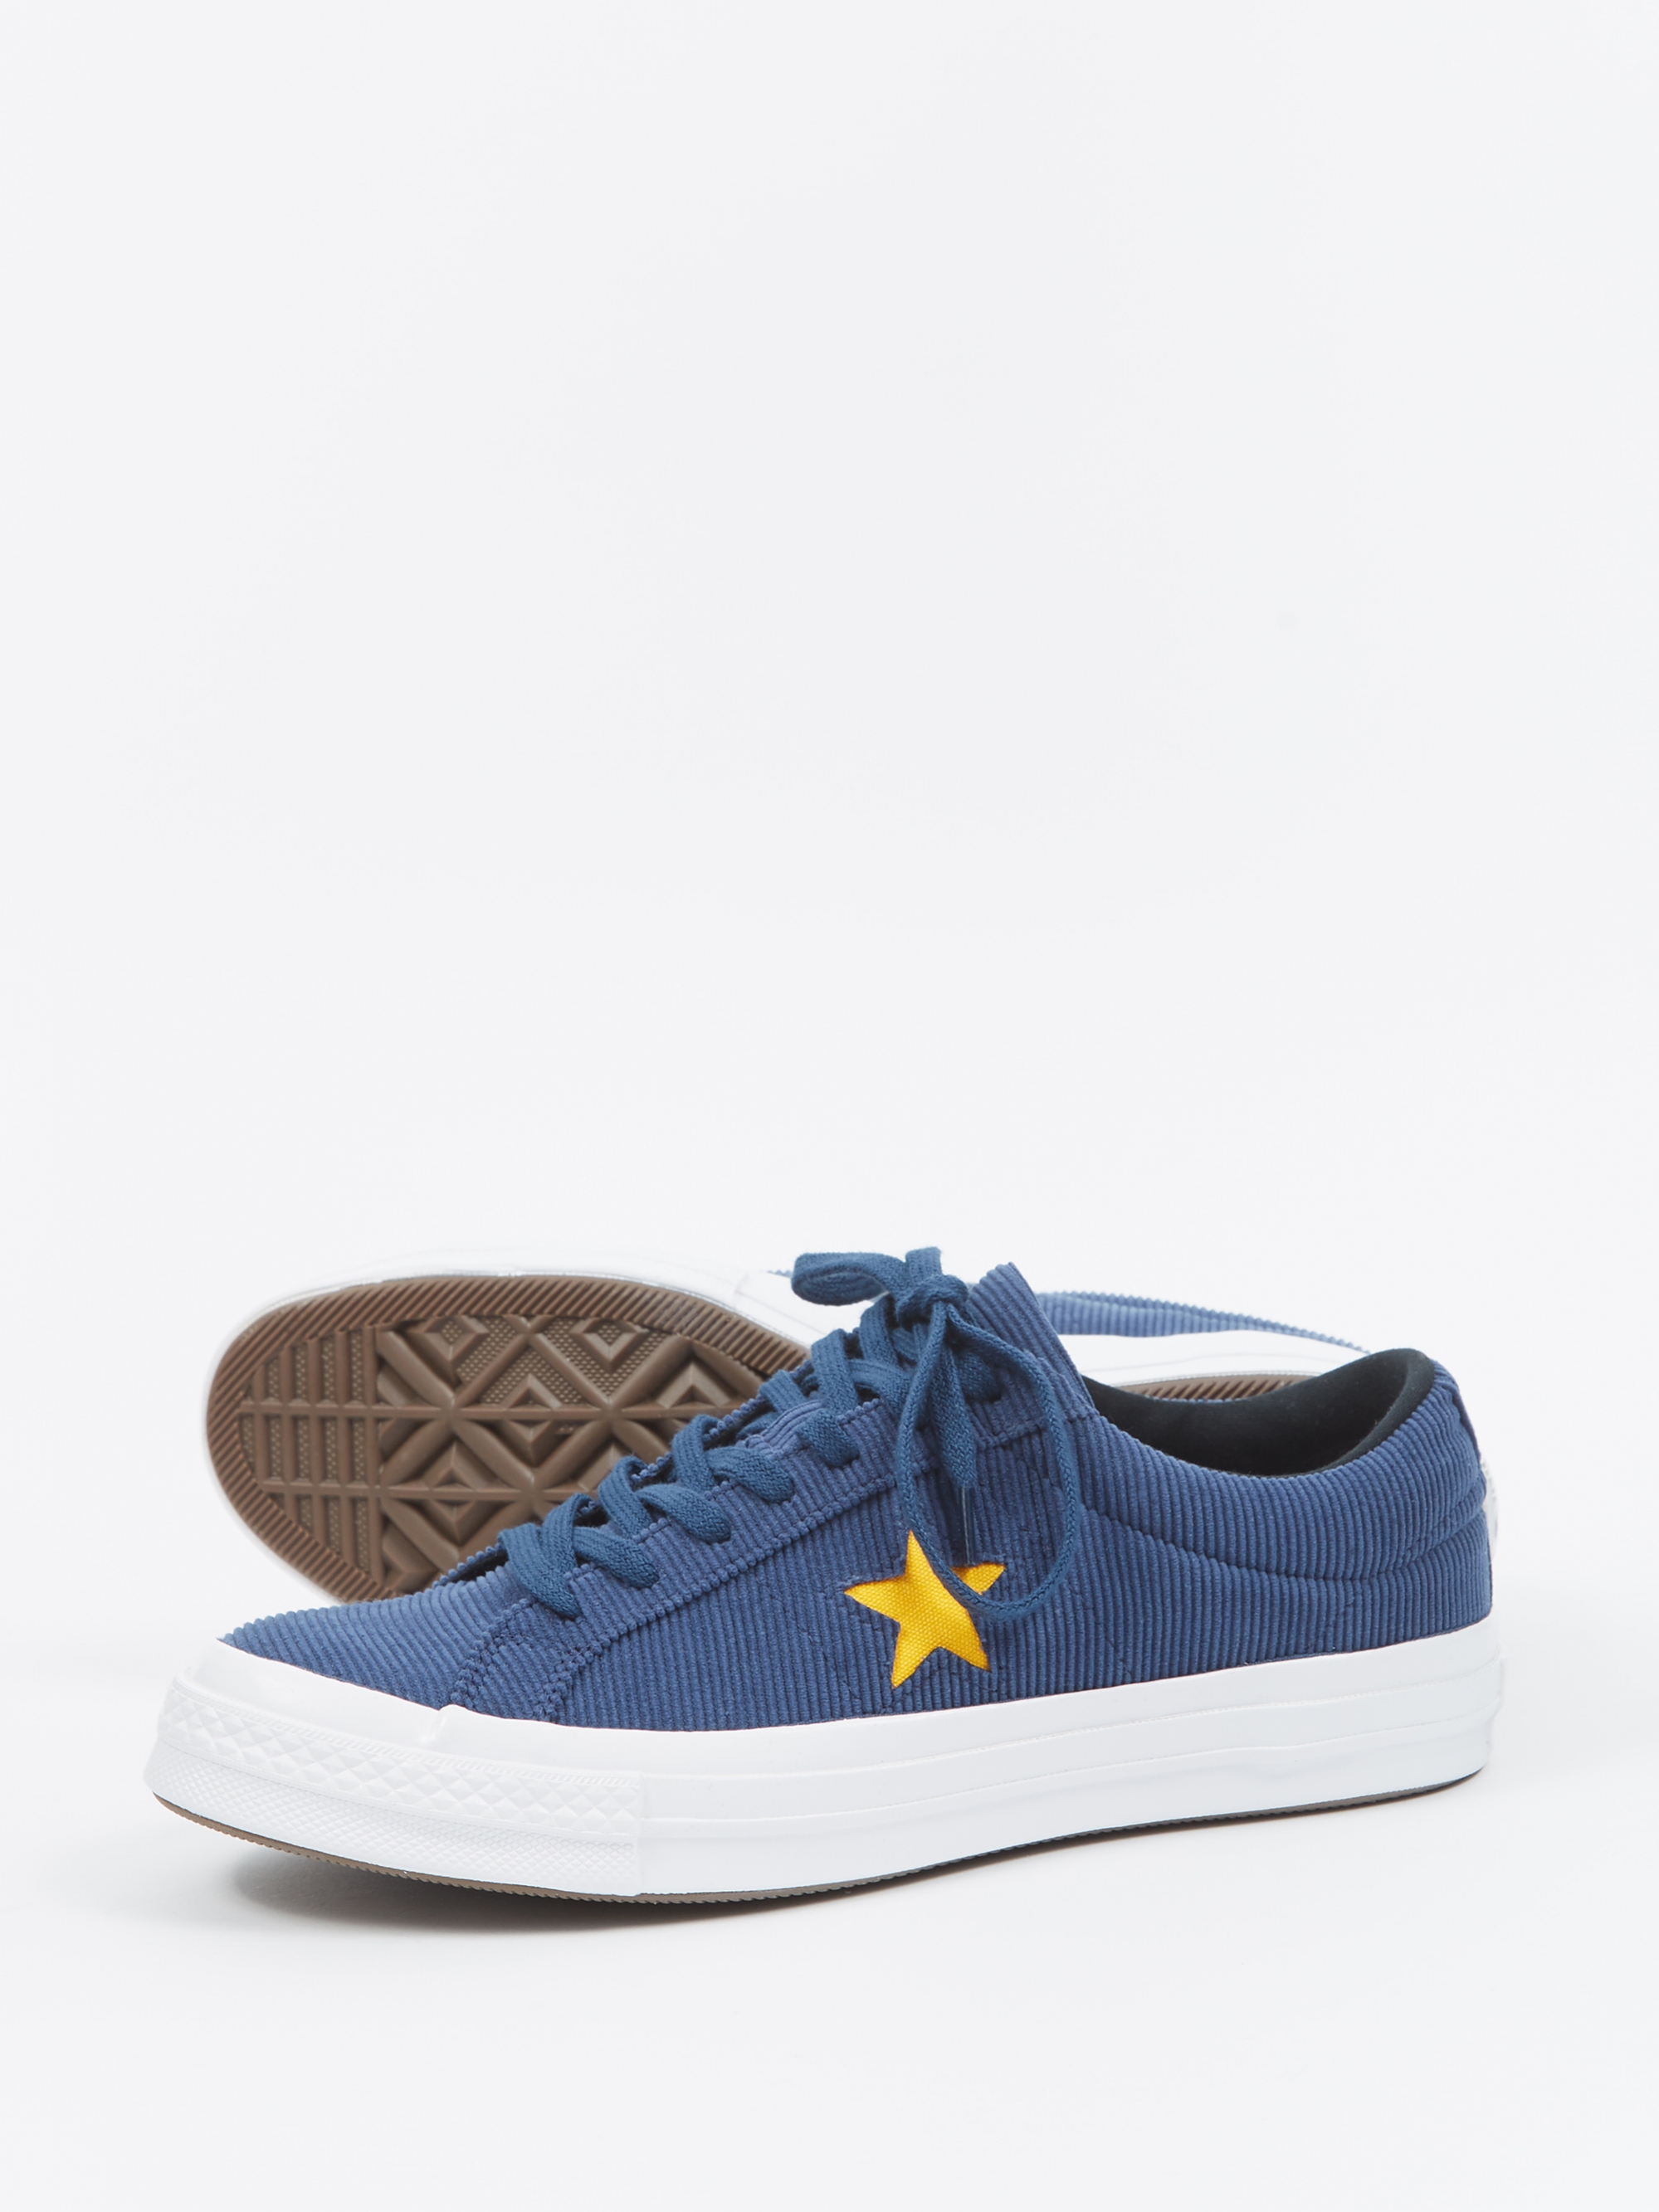 df5625aedc4a Converse One Star Ox Corduroy - Navy University Gold